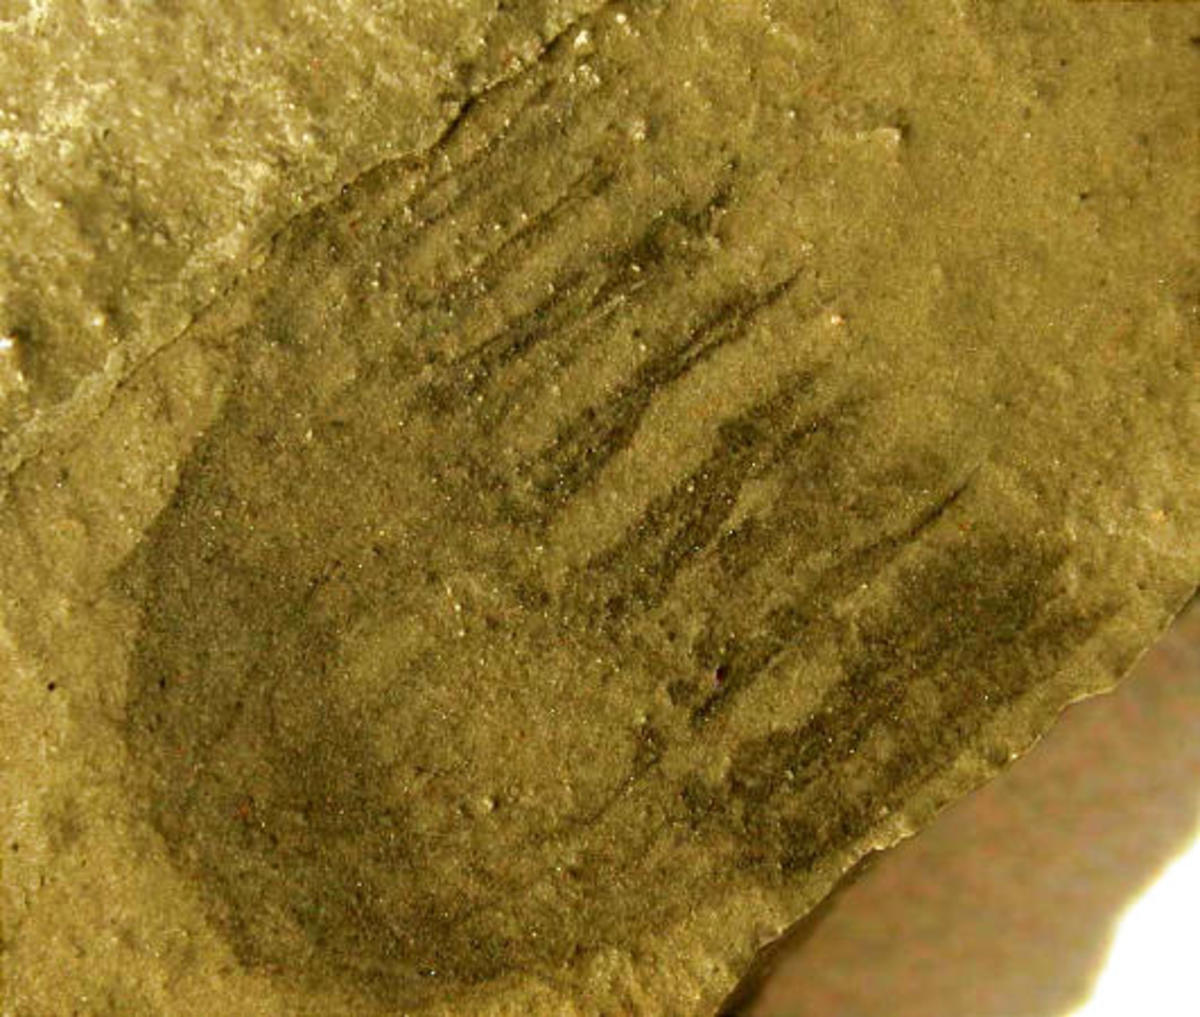 Cambrian fossil jelly